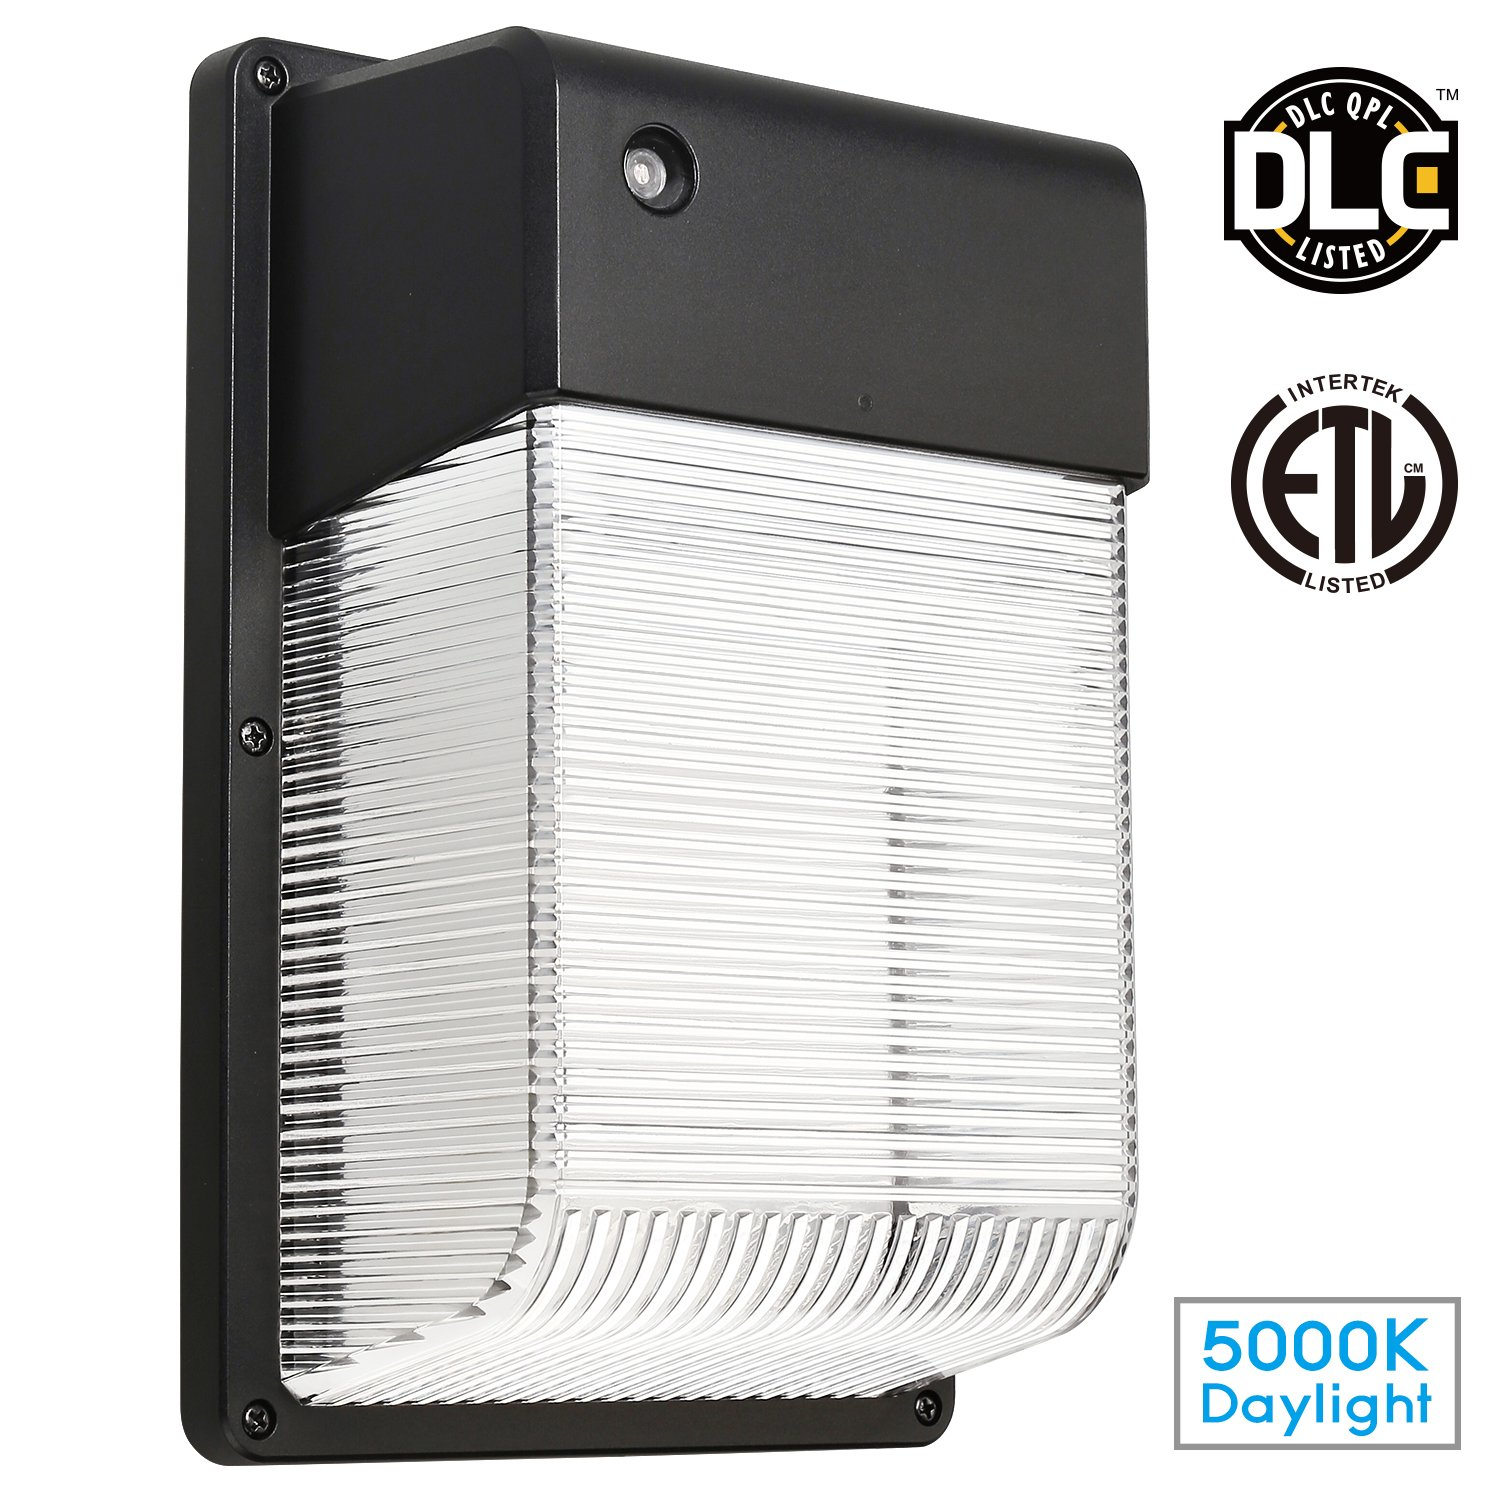 LED Wall Pack Outdoor Light Photocell Included 25W 250W Equiv. Security Area Lighting 2350 Lumens Ultra Bright DLC & ETL Certified for Garage Basement Yard Garden